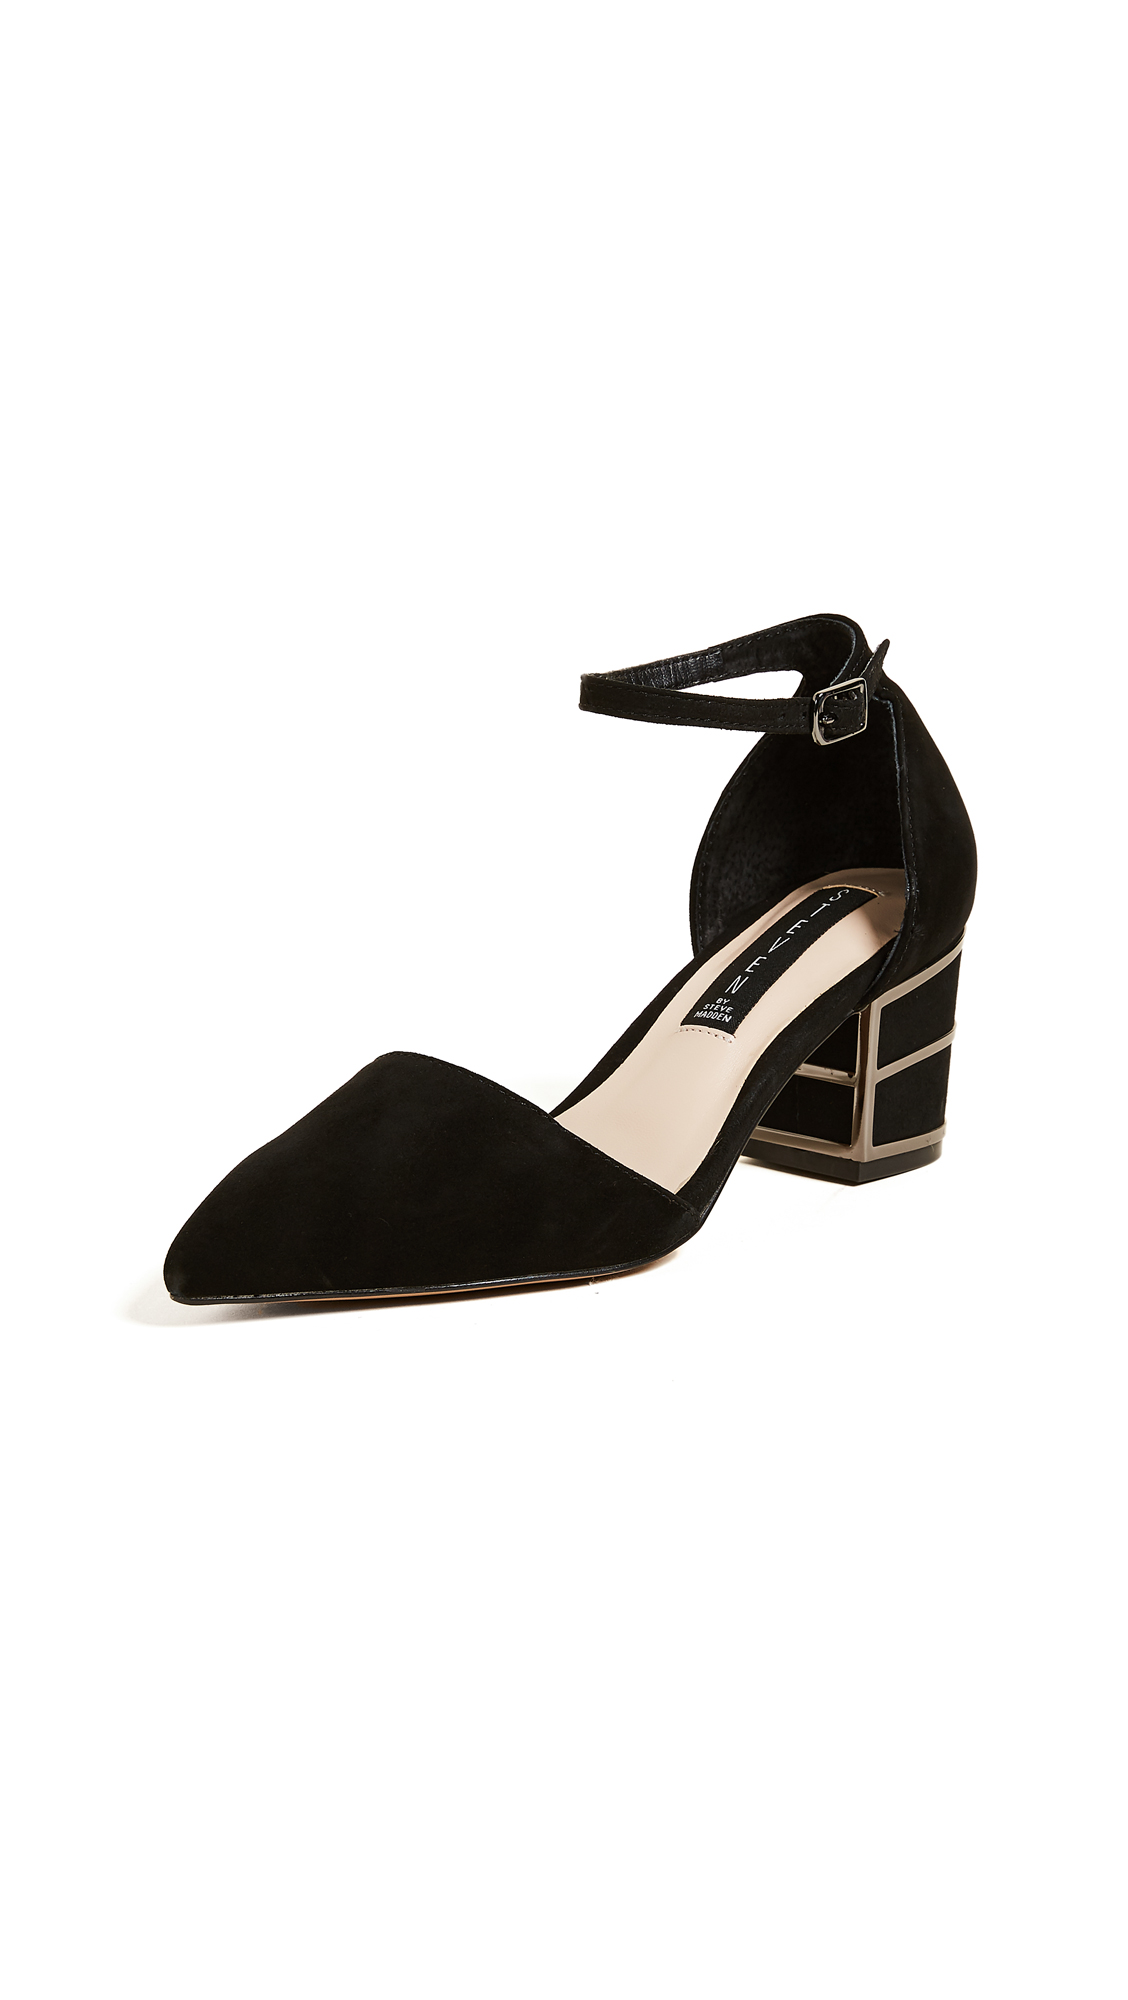 Steven Bea Ankle Strap Pumps - Black